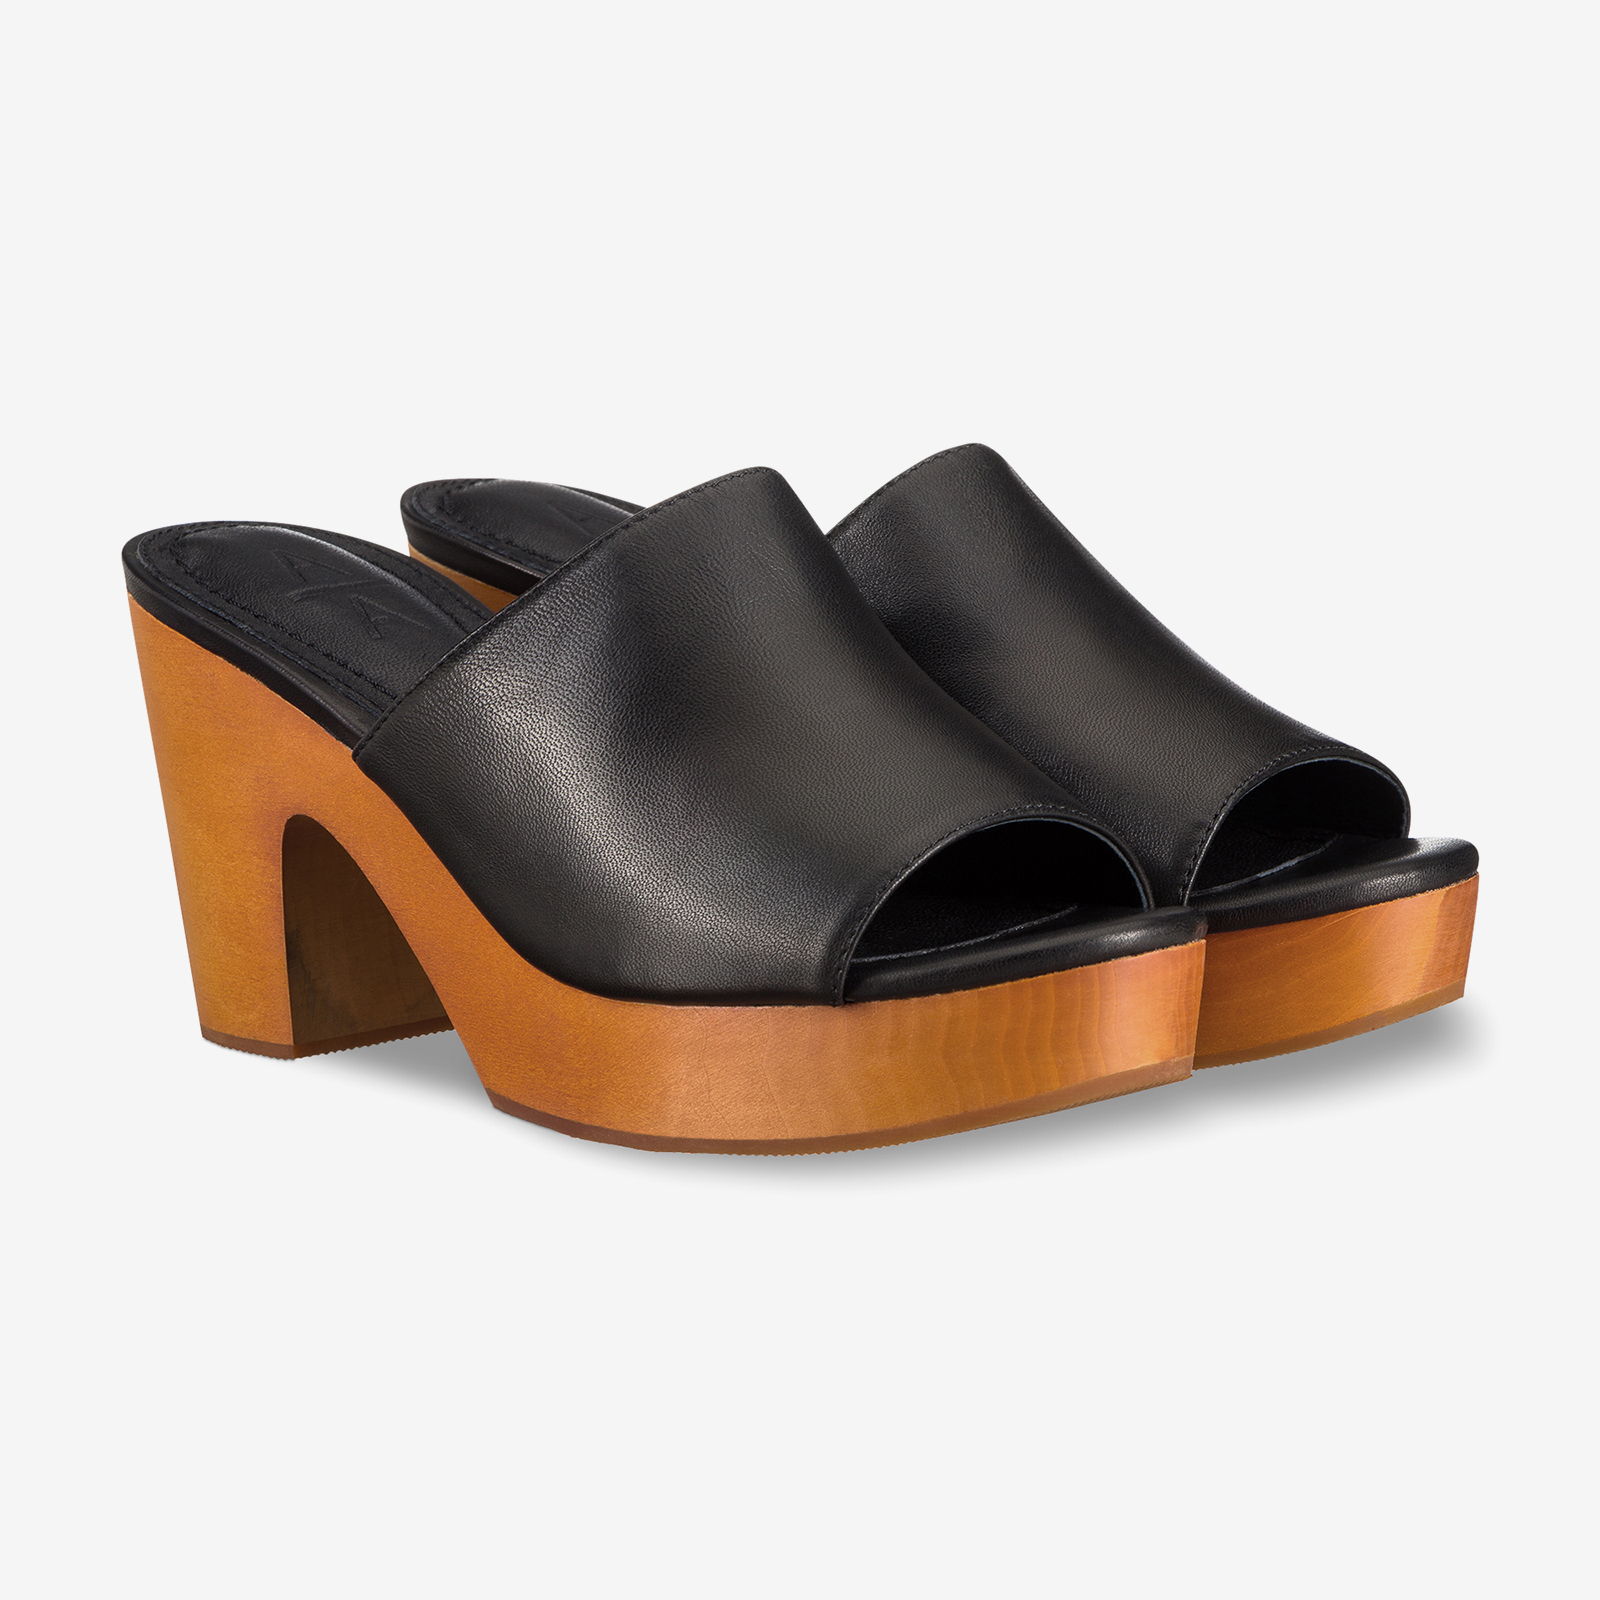 Black wedges product photography